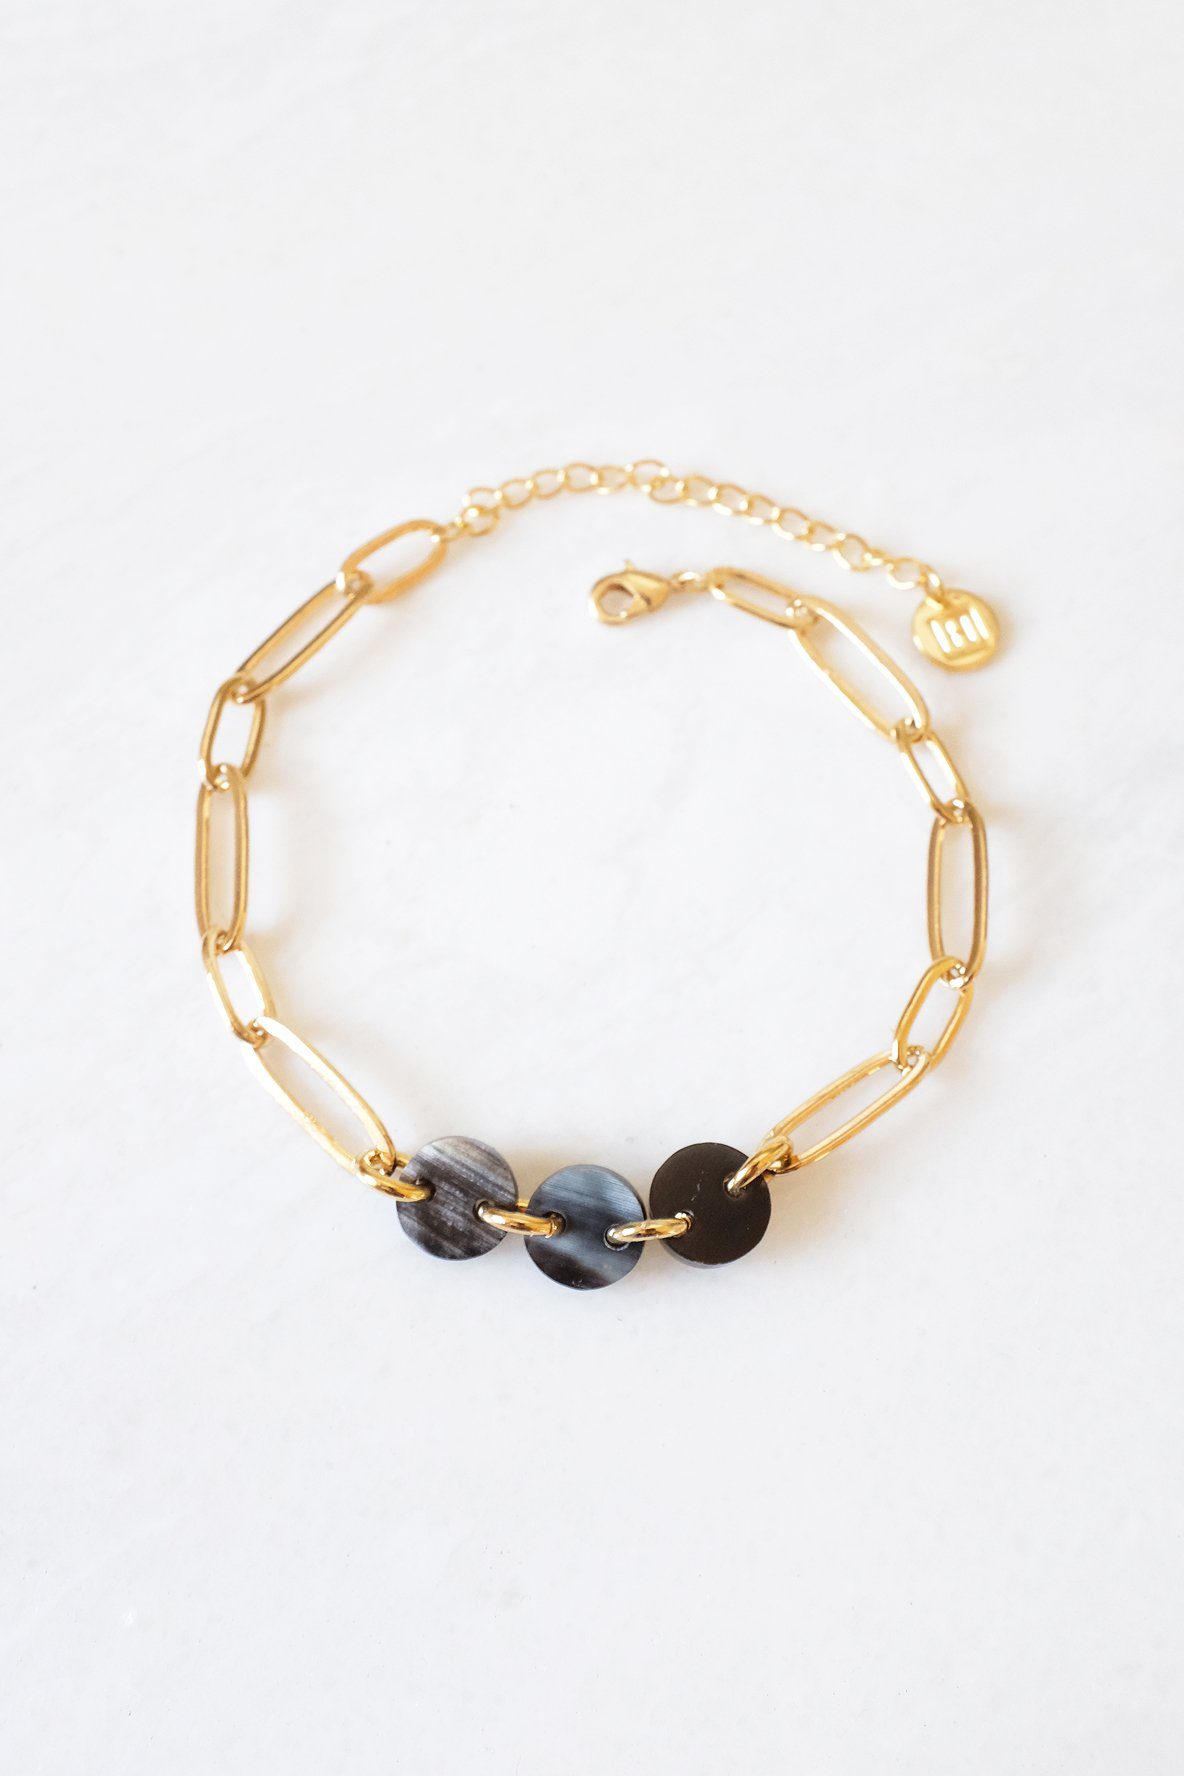 Xuan Buffalo Horn Thick Oval Link Chain Ankle Bracelet - Handcrafted & Unique Buffalo Horn Jewelry